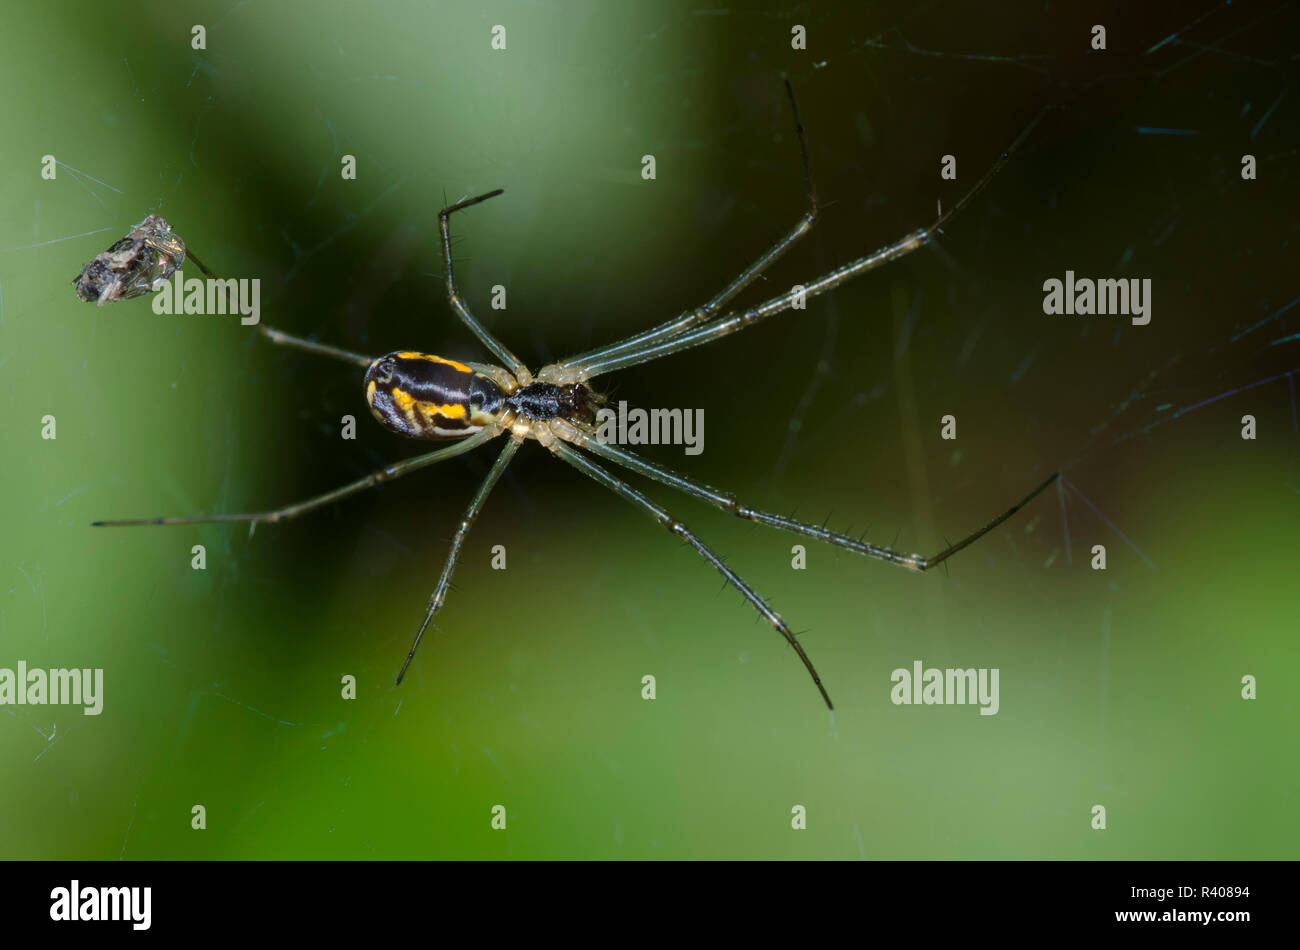 Sheetweb Spider, Subfamily Linyphiinae Stock Photo